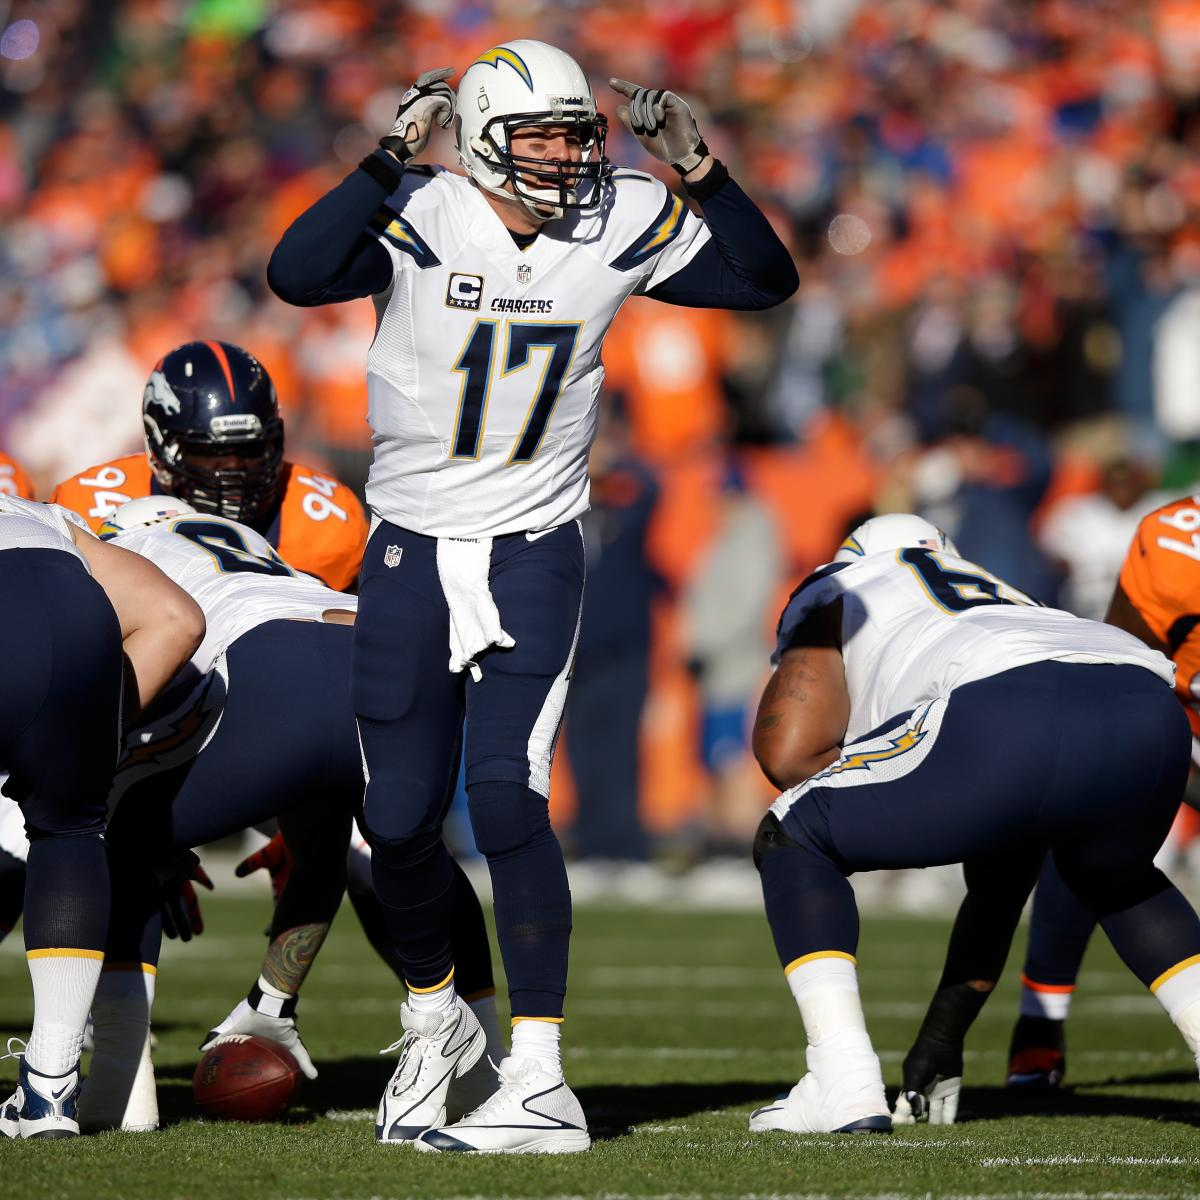 San Diego Chargers Depth Chart 2013: San Diego Chargers 2014 Virtual Program: Depth Chart